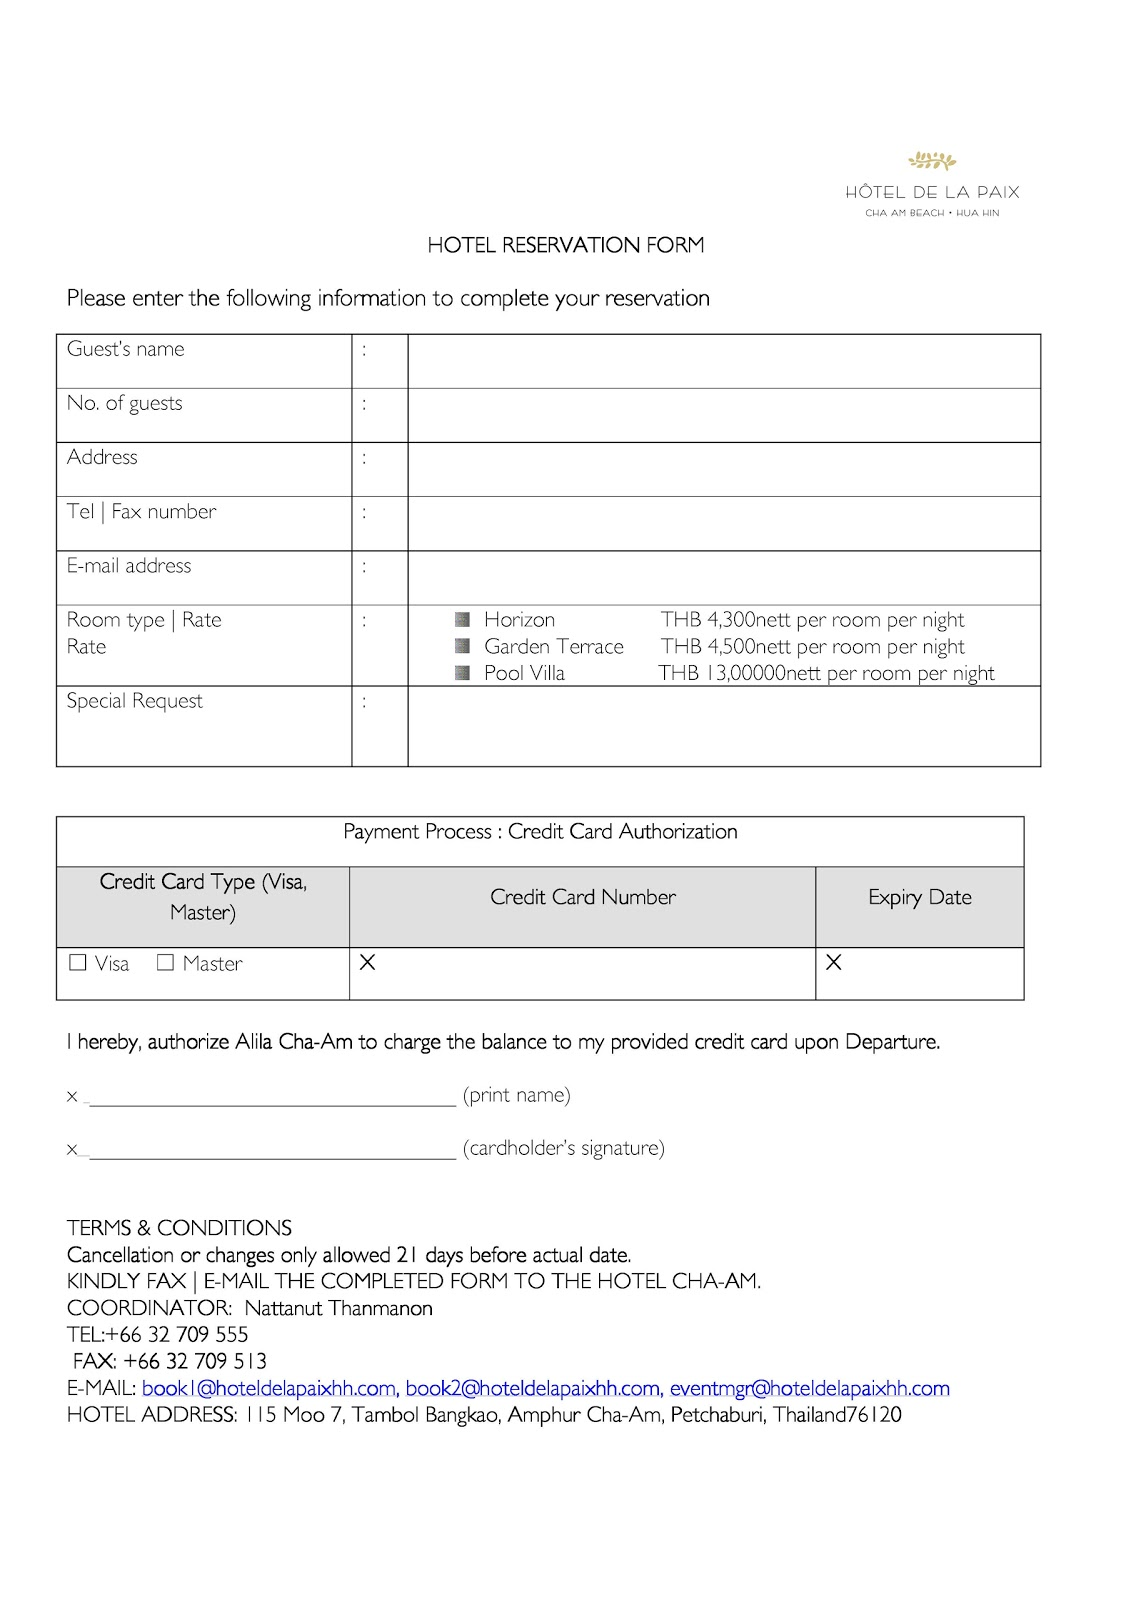 Candy nicks wedding hotel reservation form completed form to ms nattanut thanmanon also please indicate in the special request section the total of nights you intend to stay at the hotel thecheapjerseys Choice Image